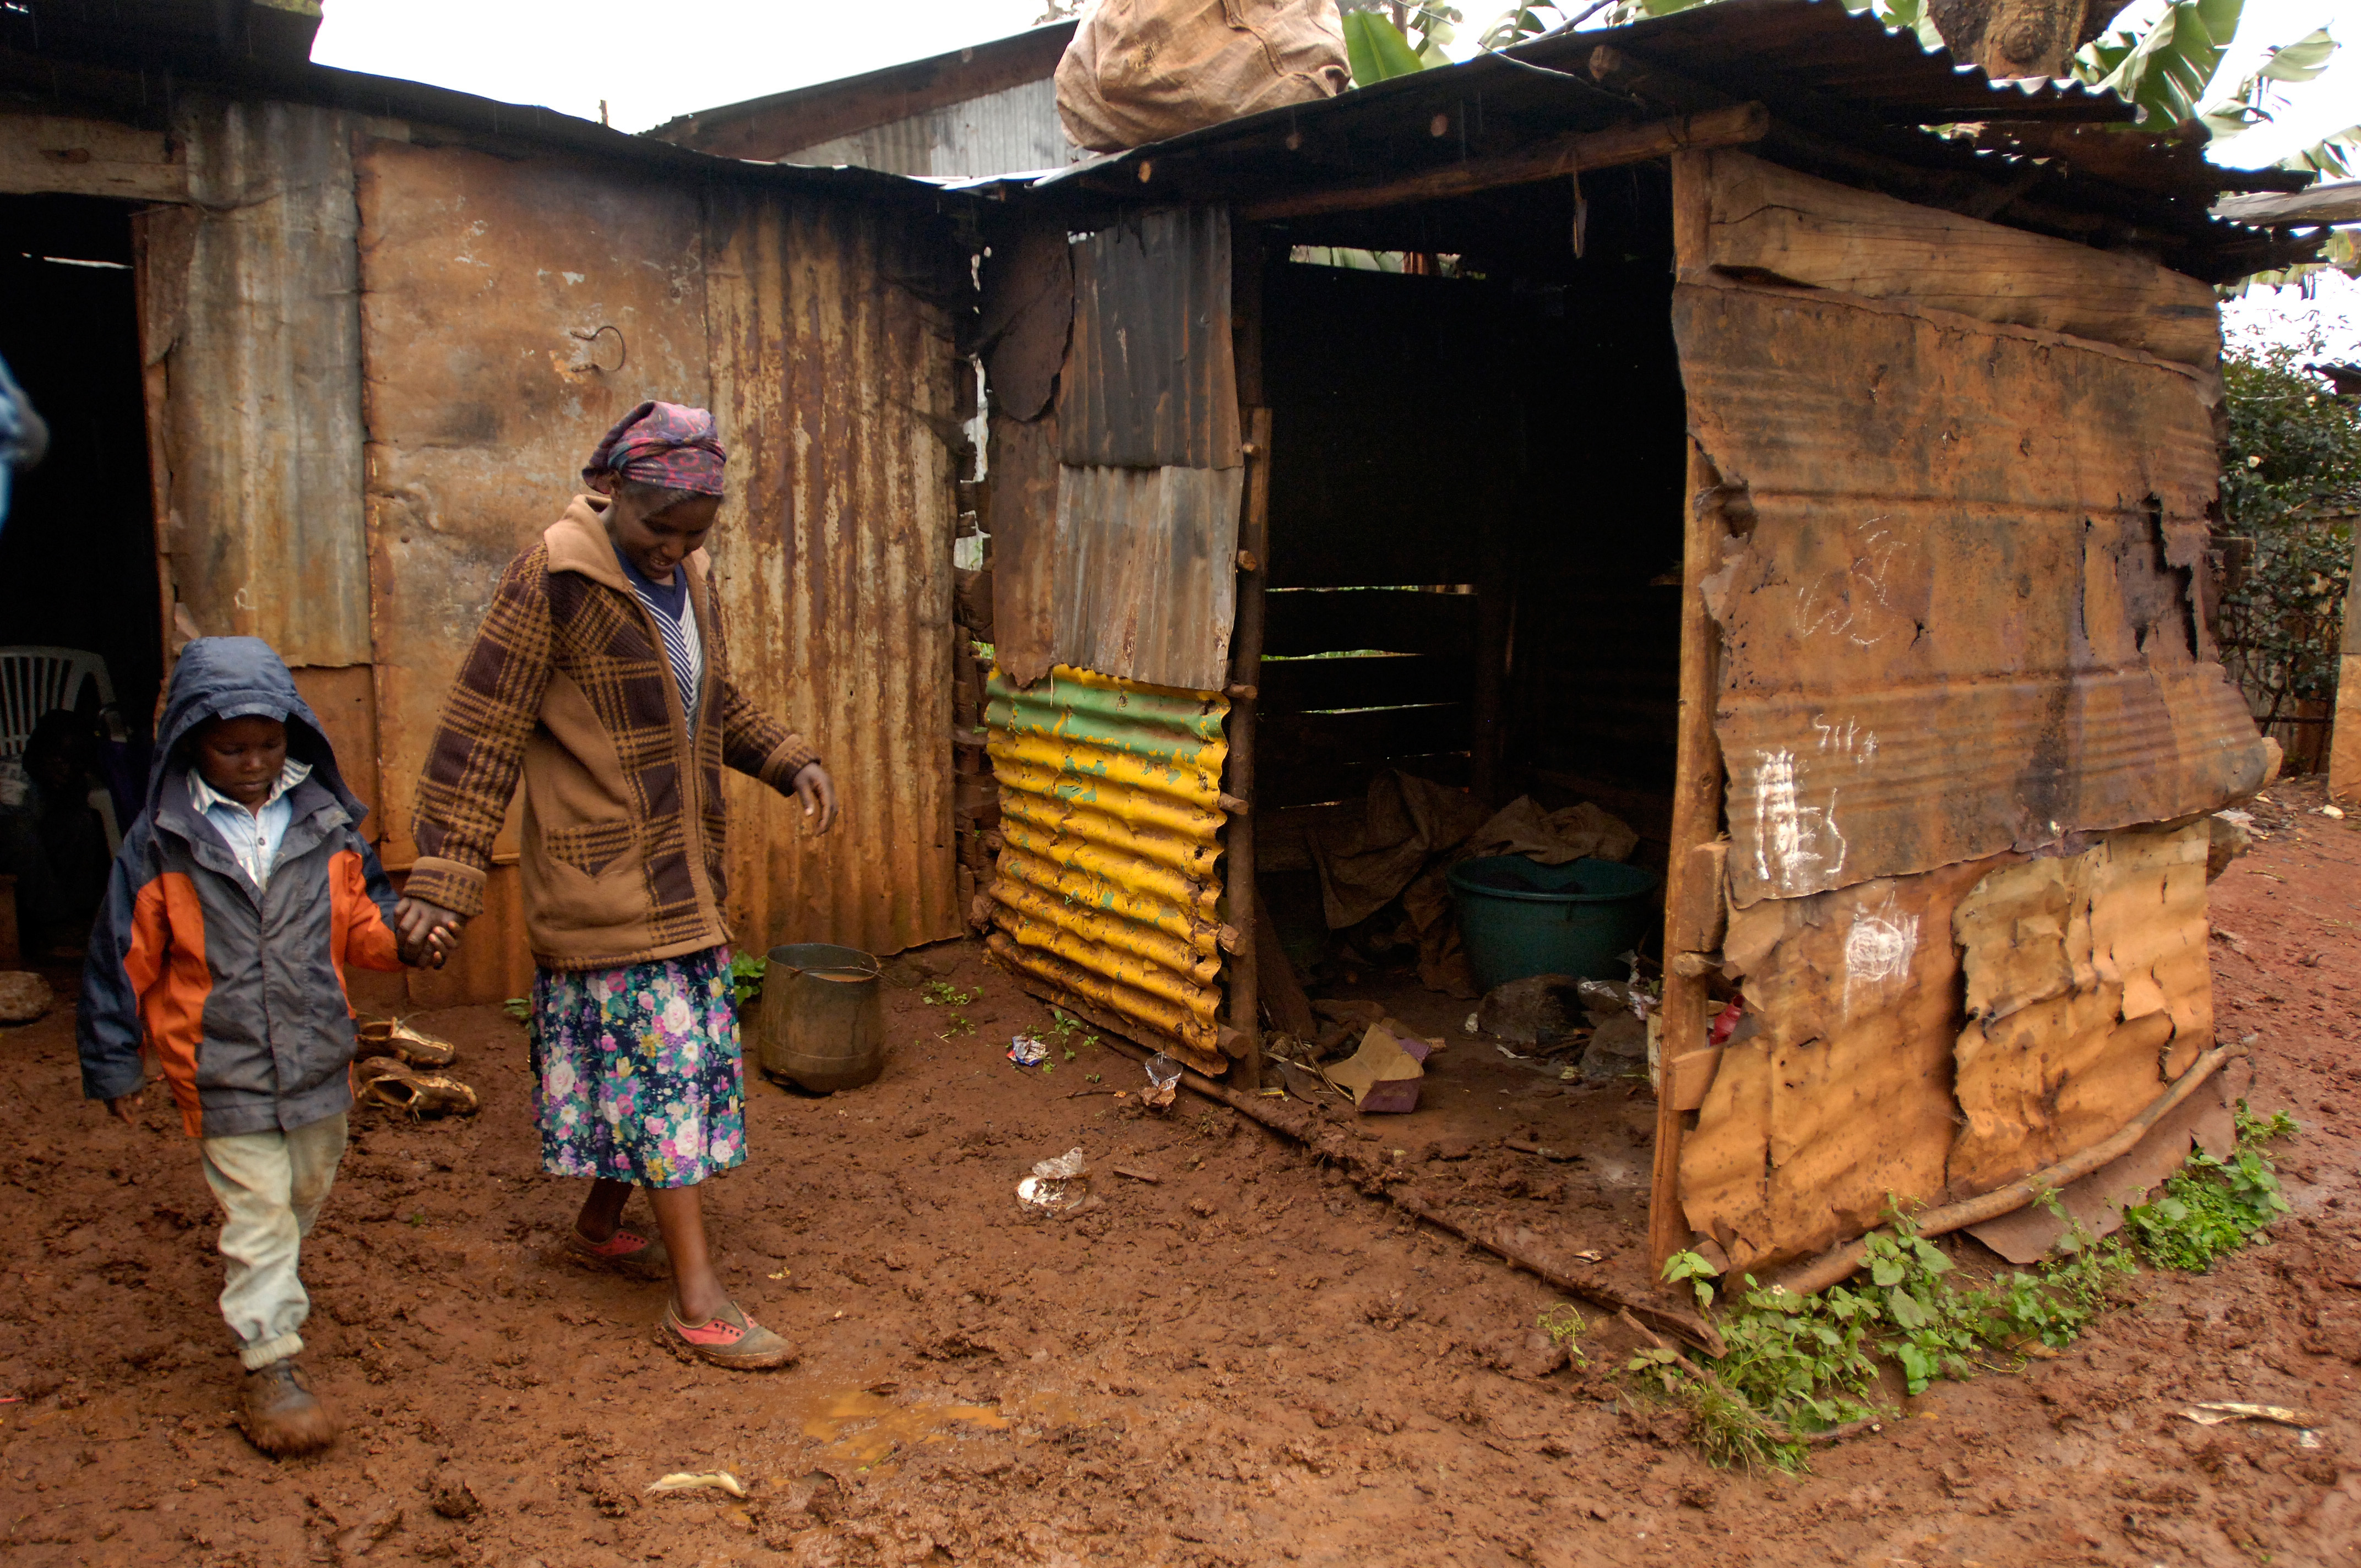 Boy with mother walking on wet ground from shack